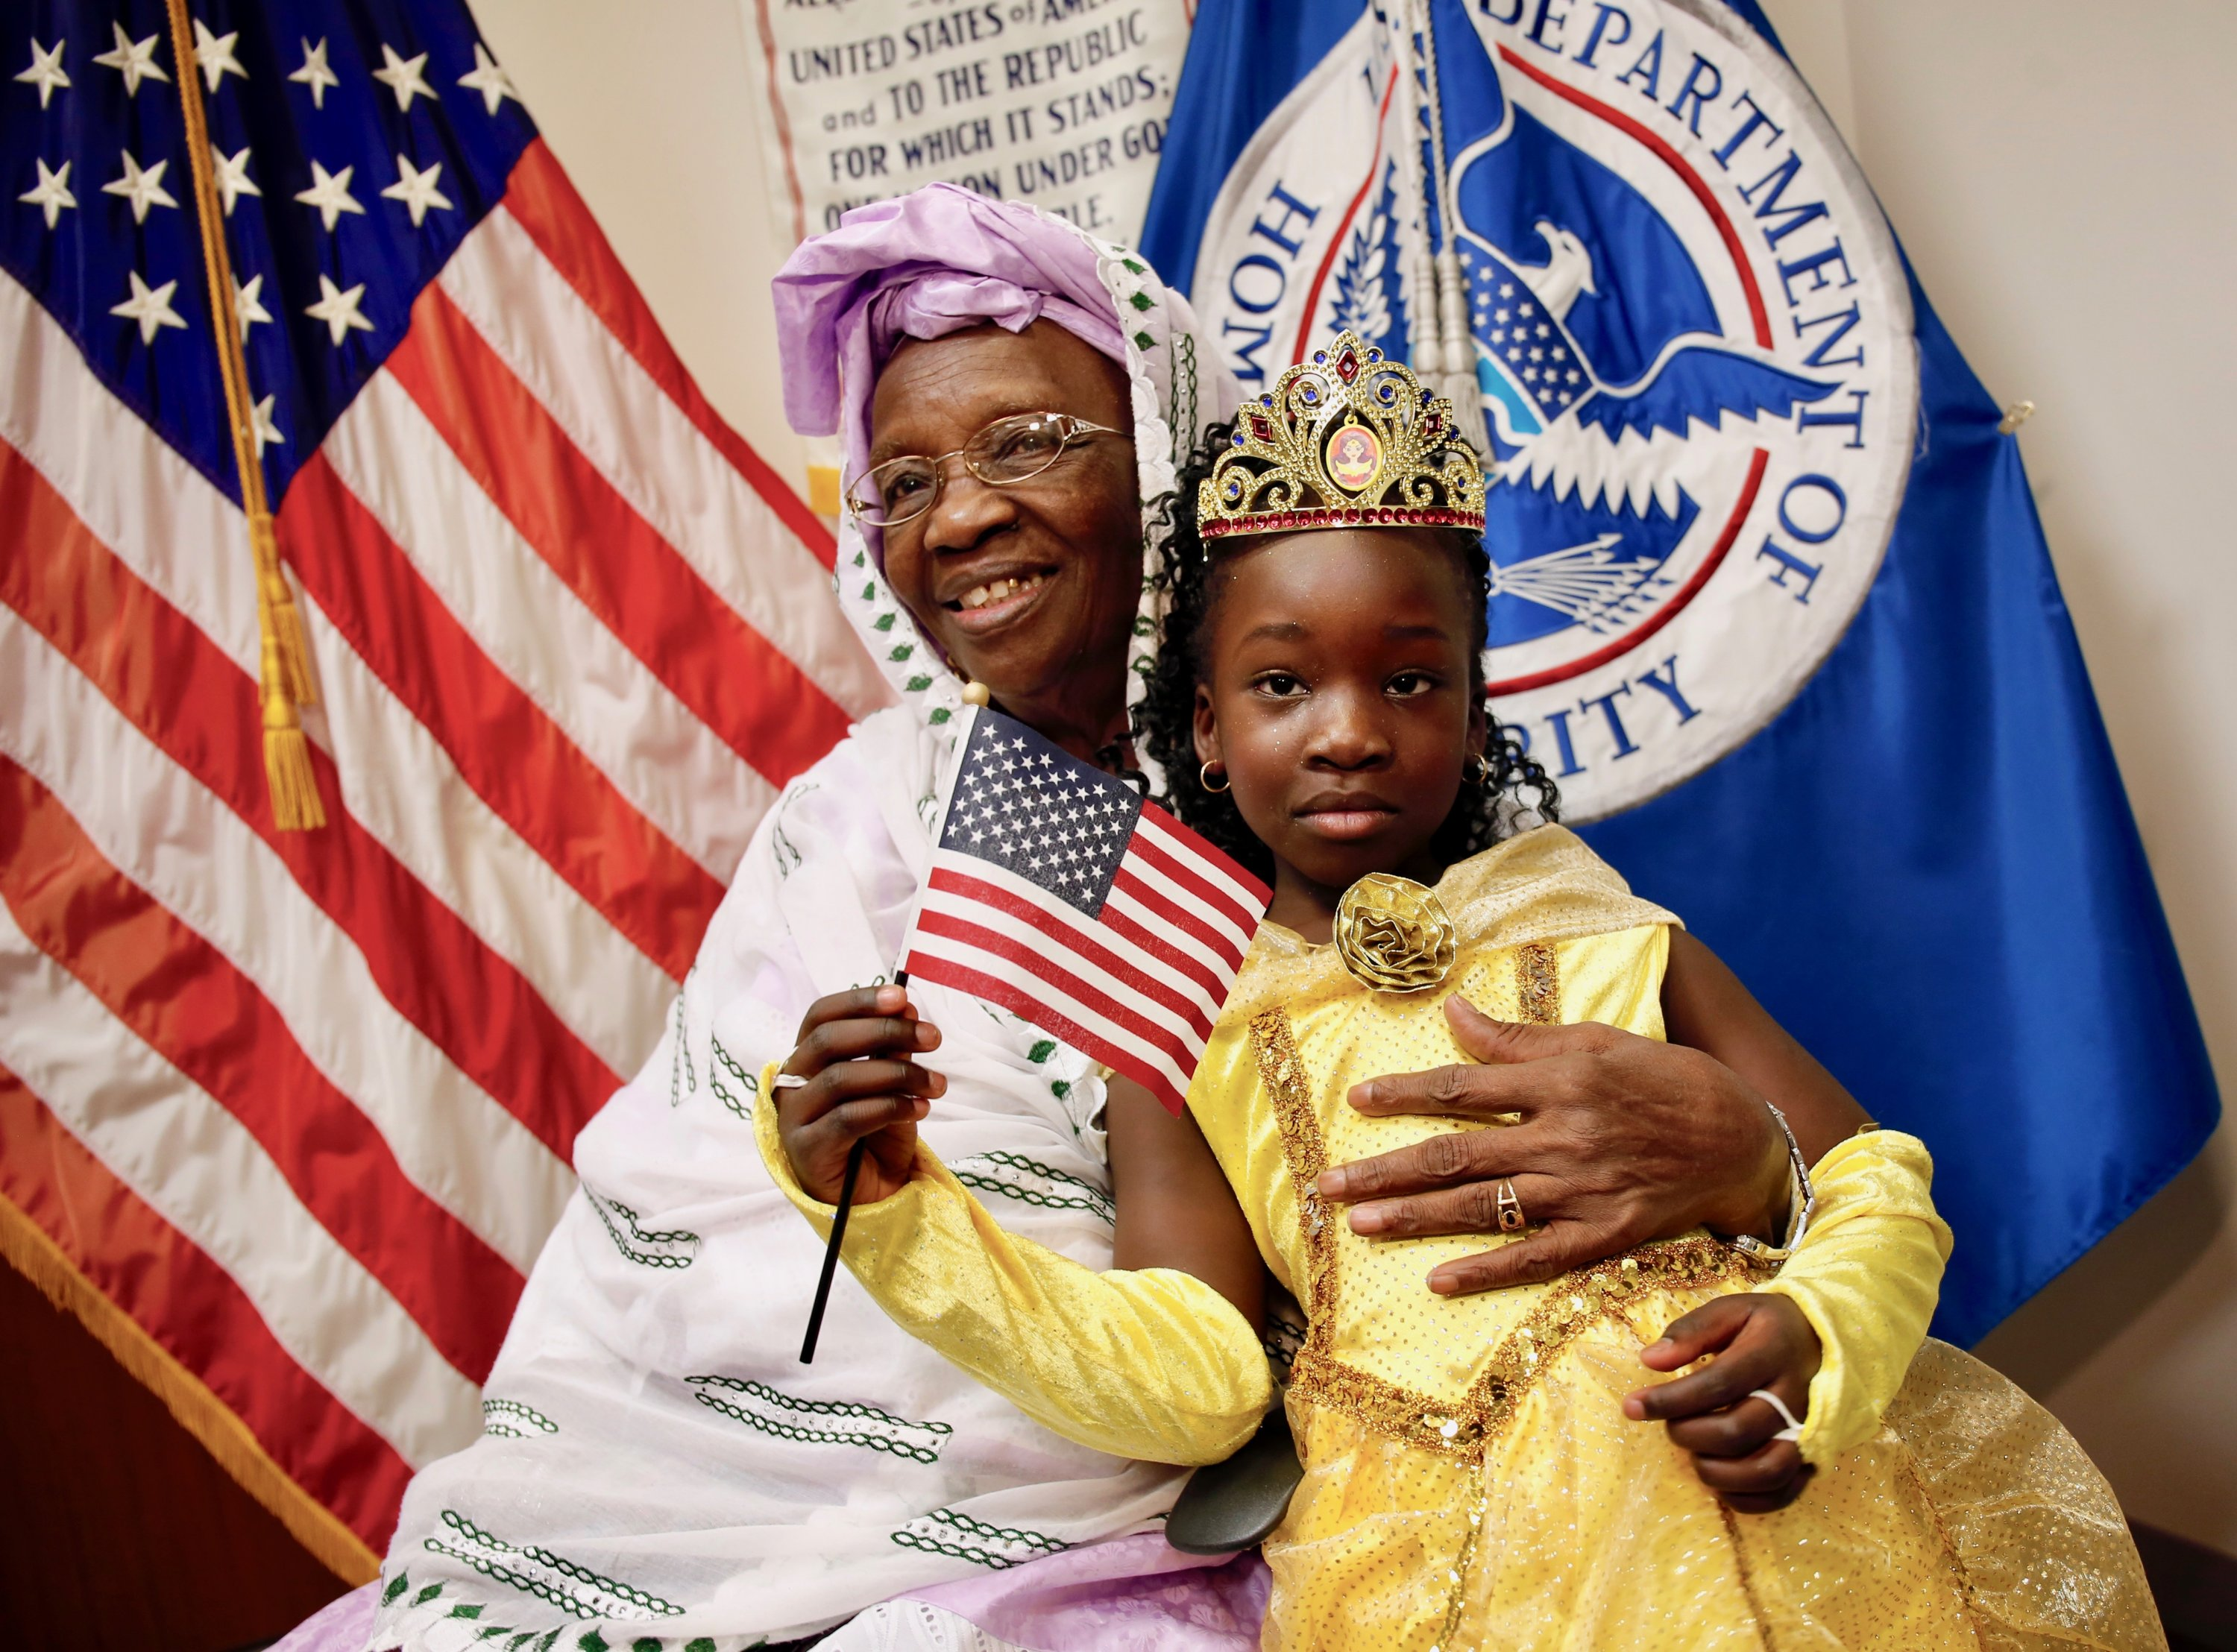 Photographs of Immigrants Becoming U.S. Citizens: A woman from Ethiopia poses with her granddaughter after she participated in a special Halloween-themed citizenship ceremony at the USCIS field office in Fairfax.